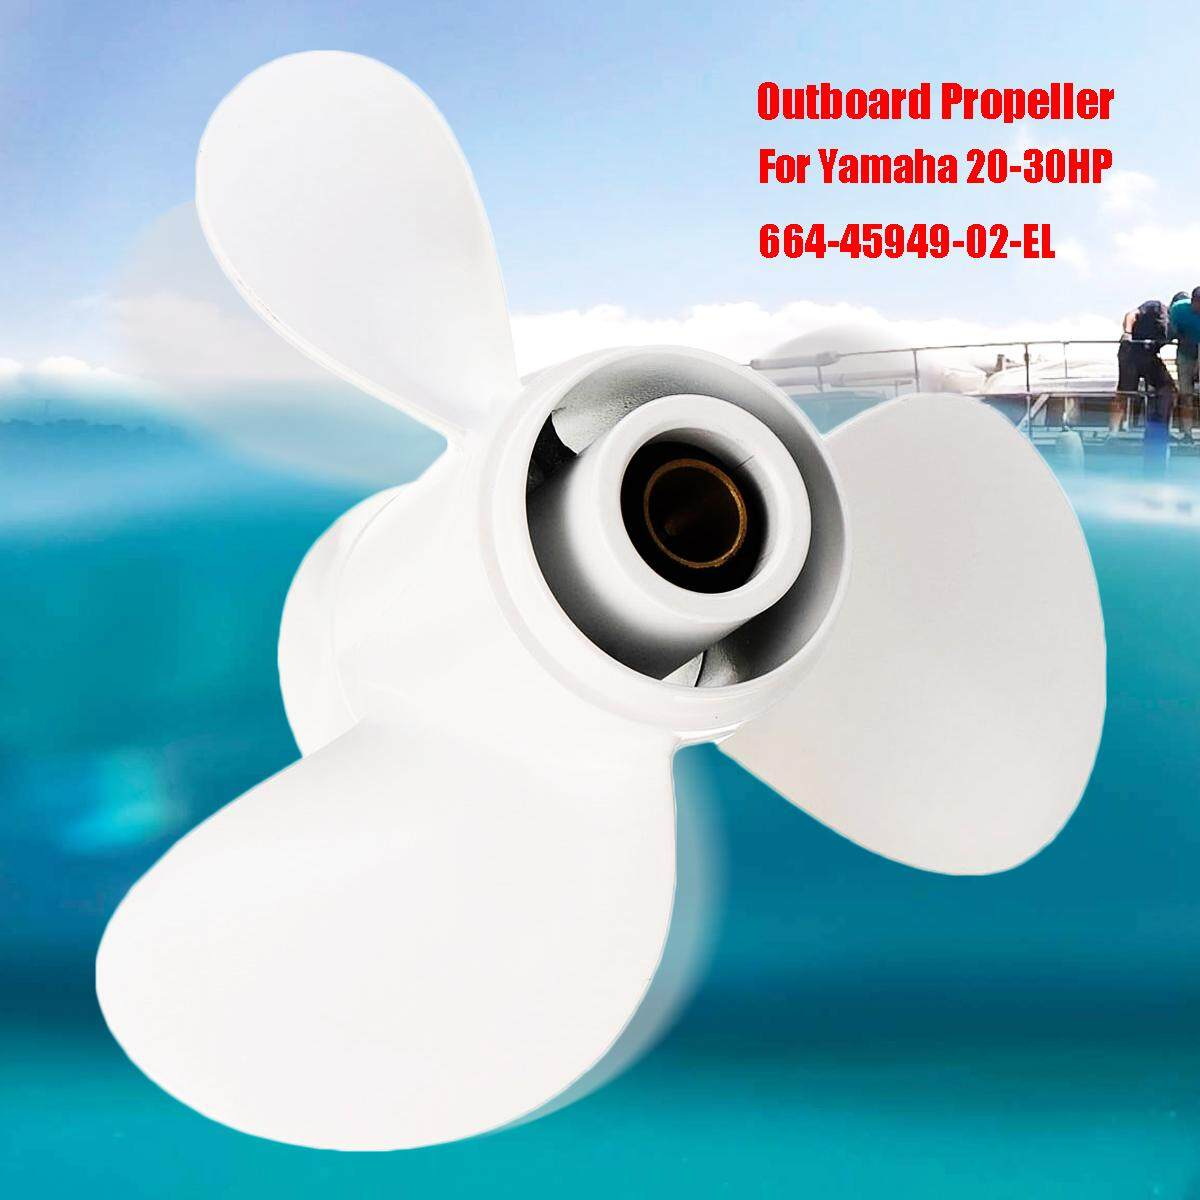 9 7/8 x 13 Aluminum Outboard Propeller for Yamaha 20-30HP 664-45949-02-EL